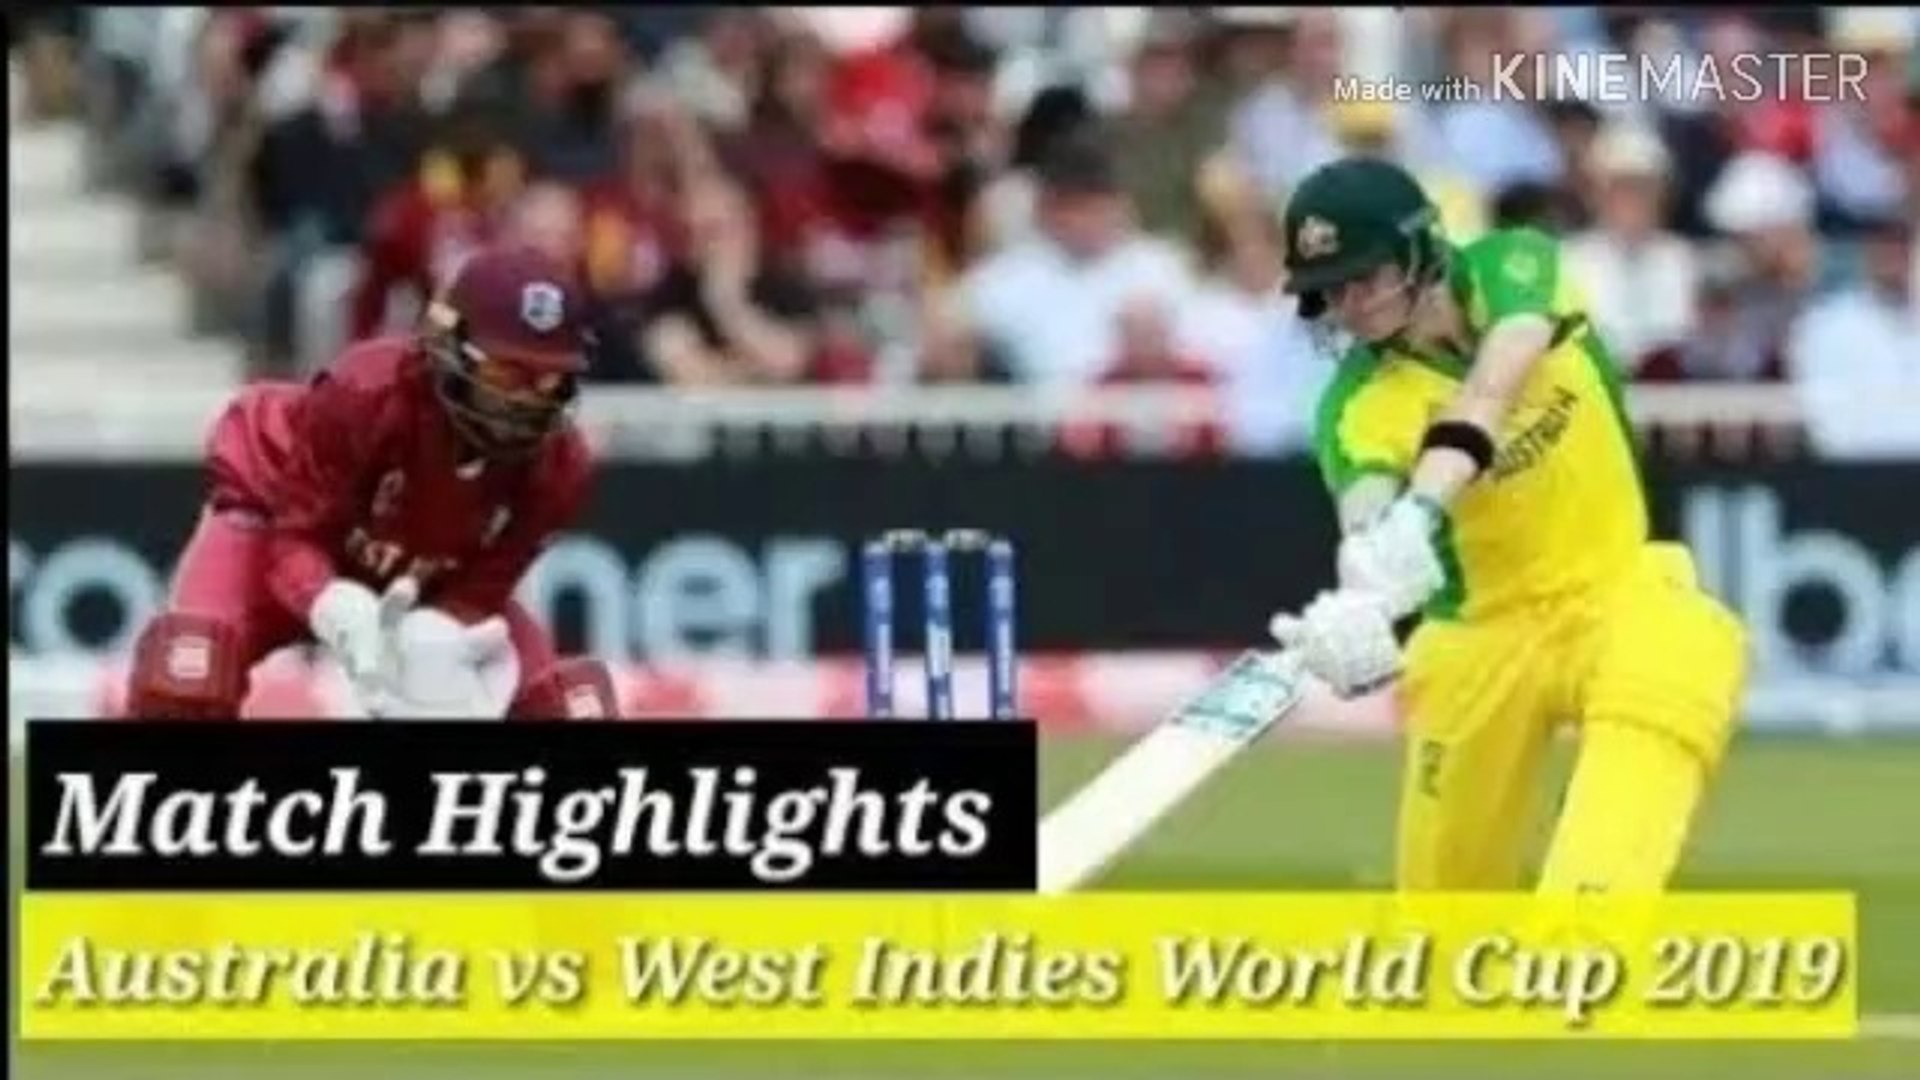 Australia Vs West Indies World Cup 2019 Full Match Highlights Live Cricket 19